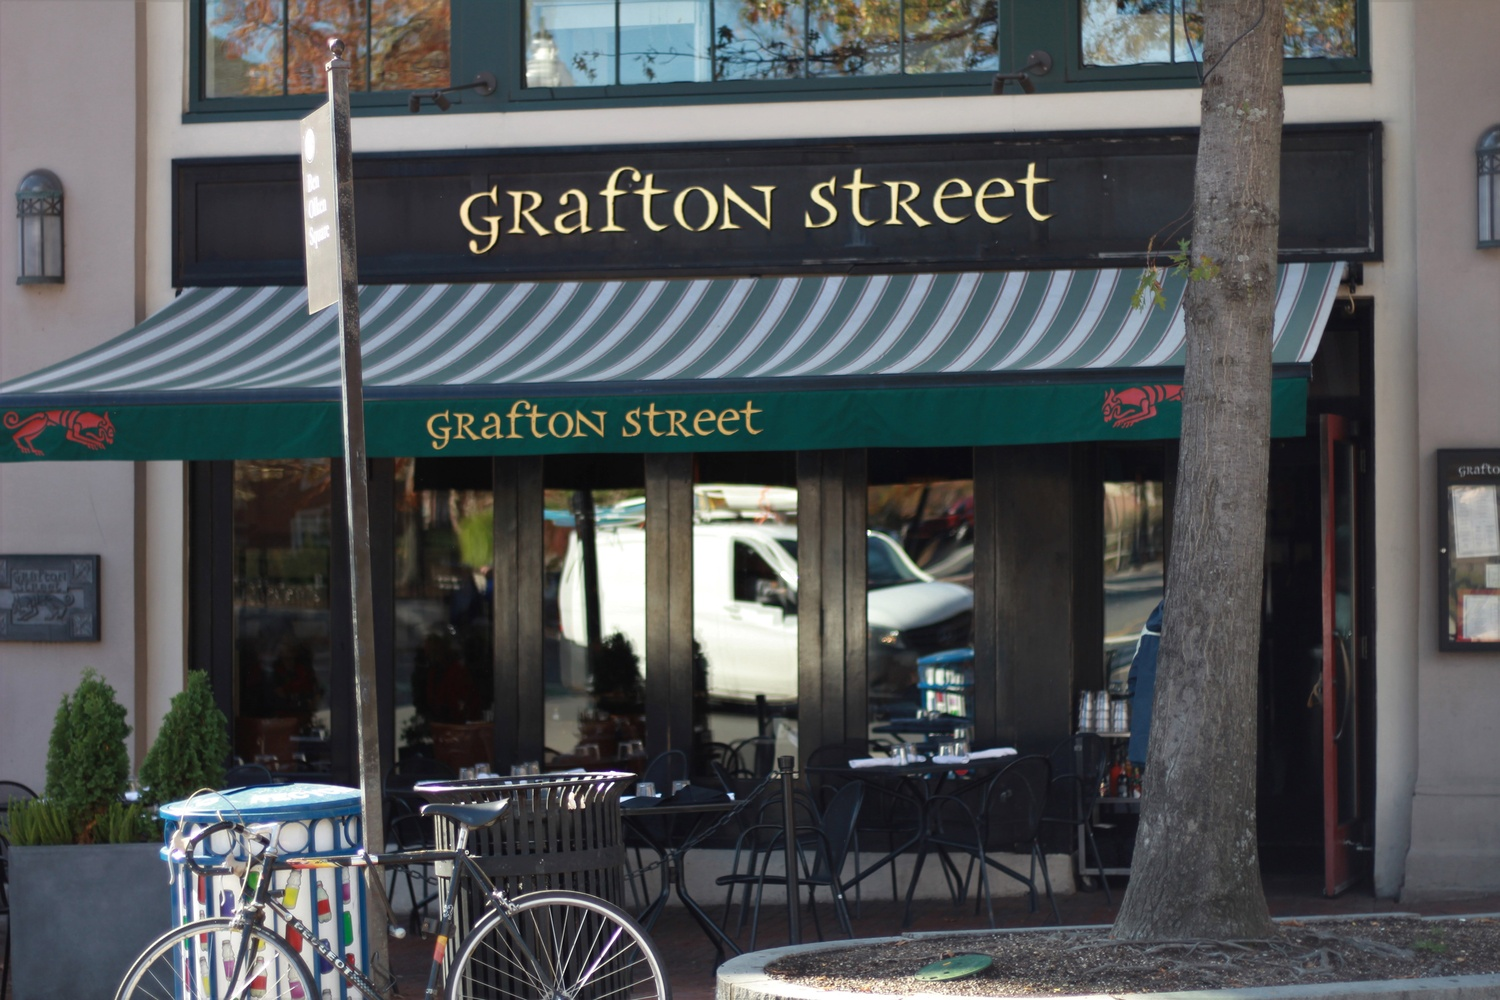 Grafton Street Pub & Grill is a frequented destination chosen for the Classroom to Table program.